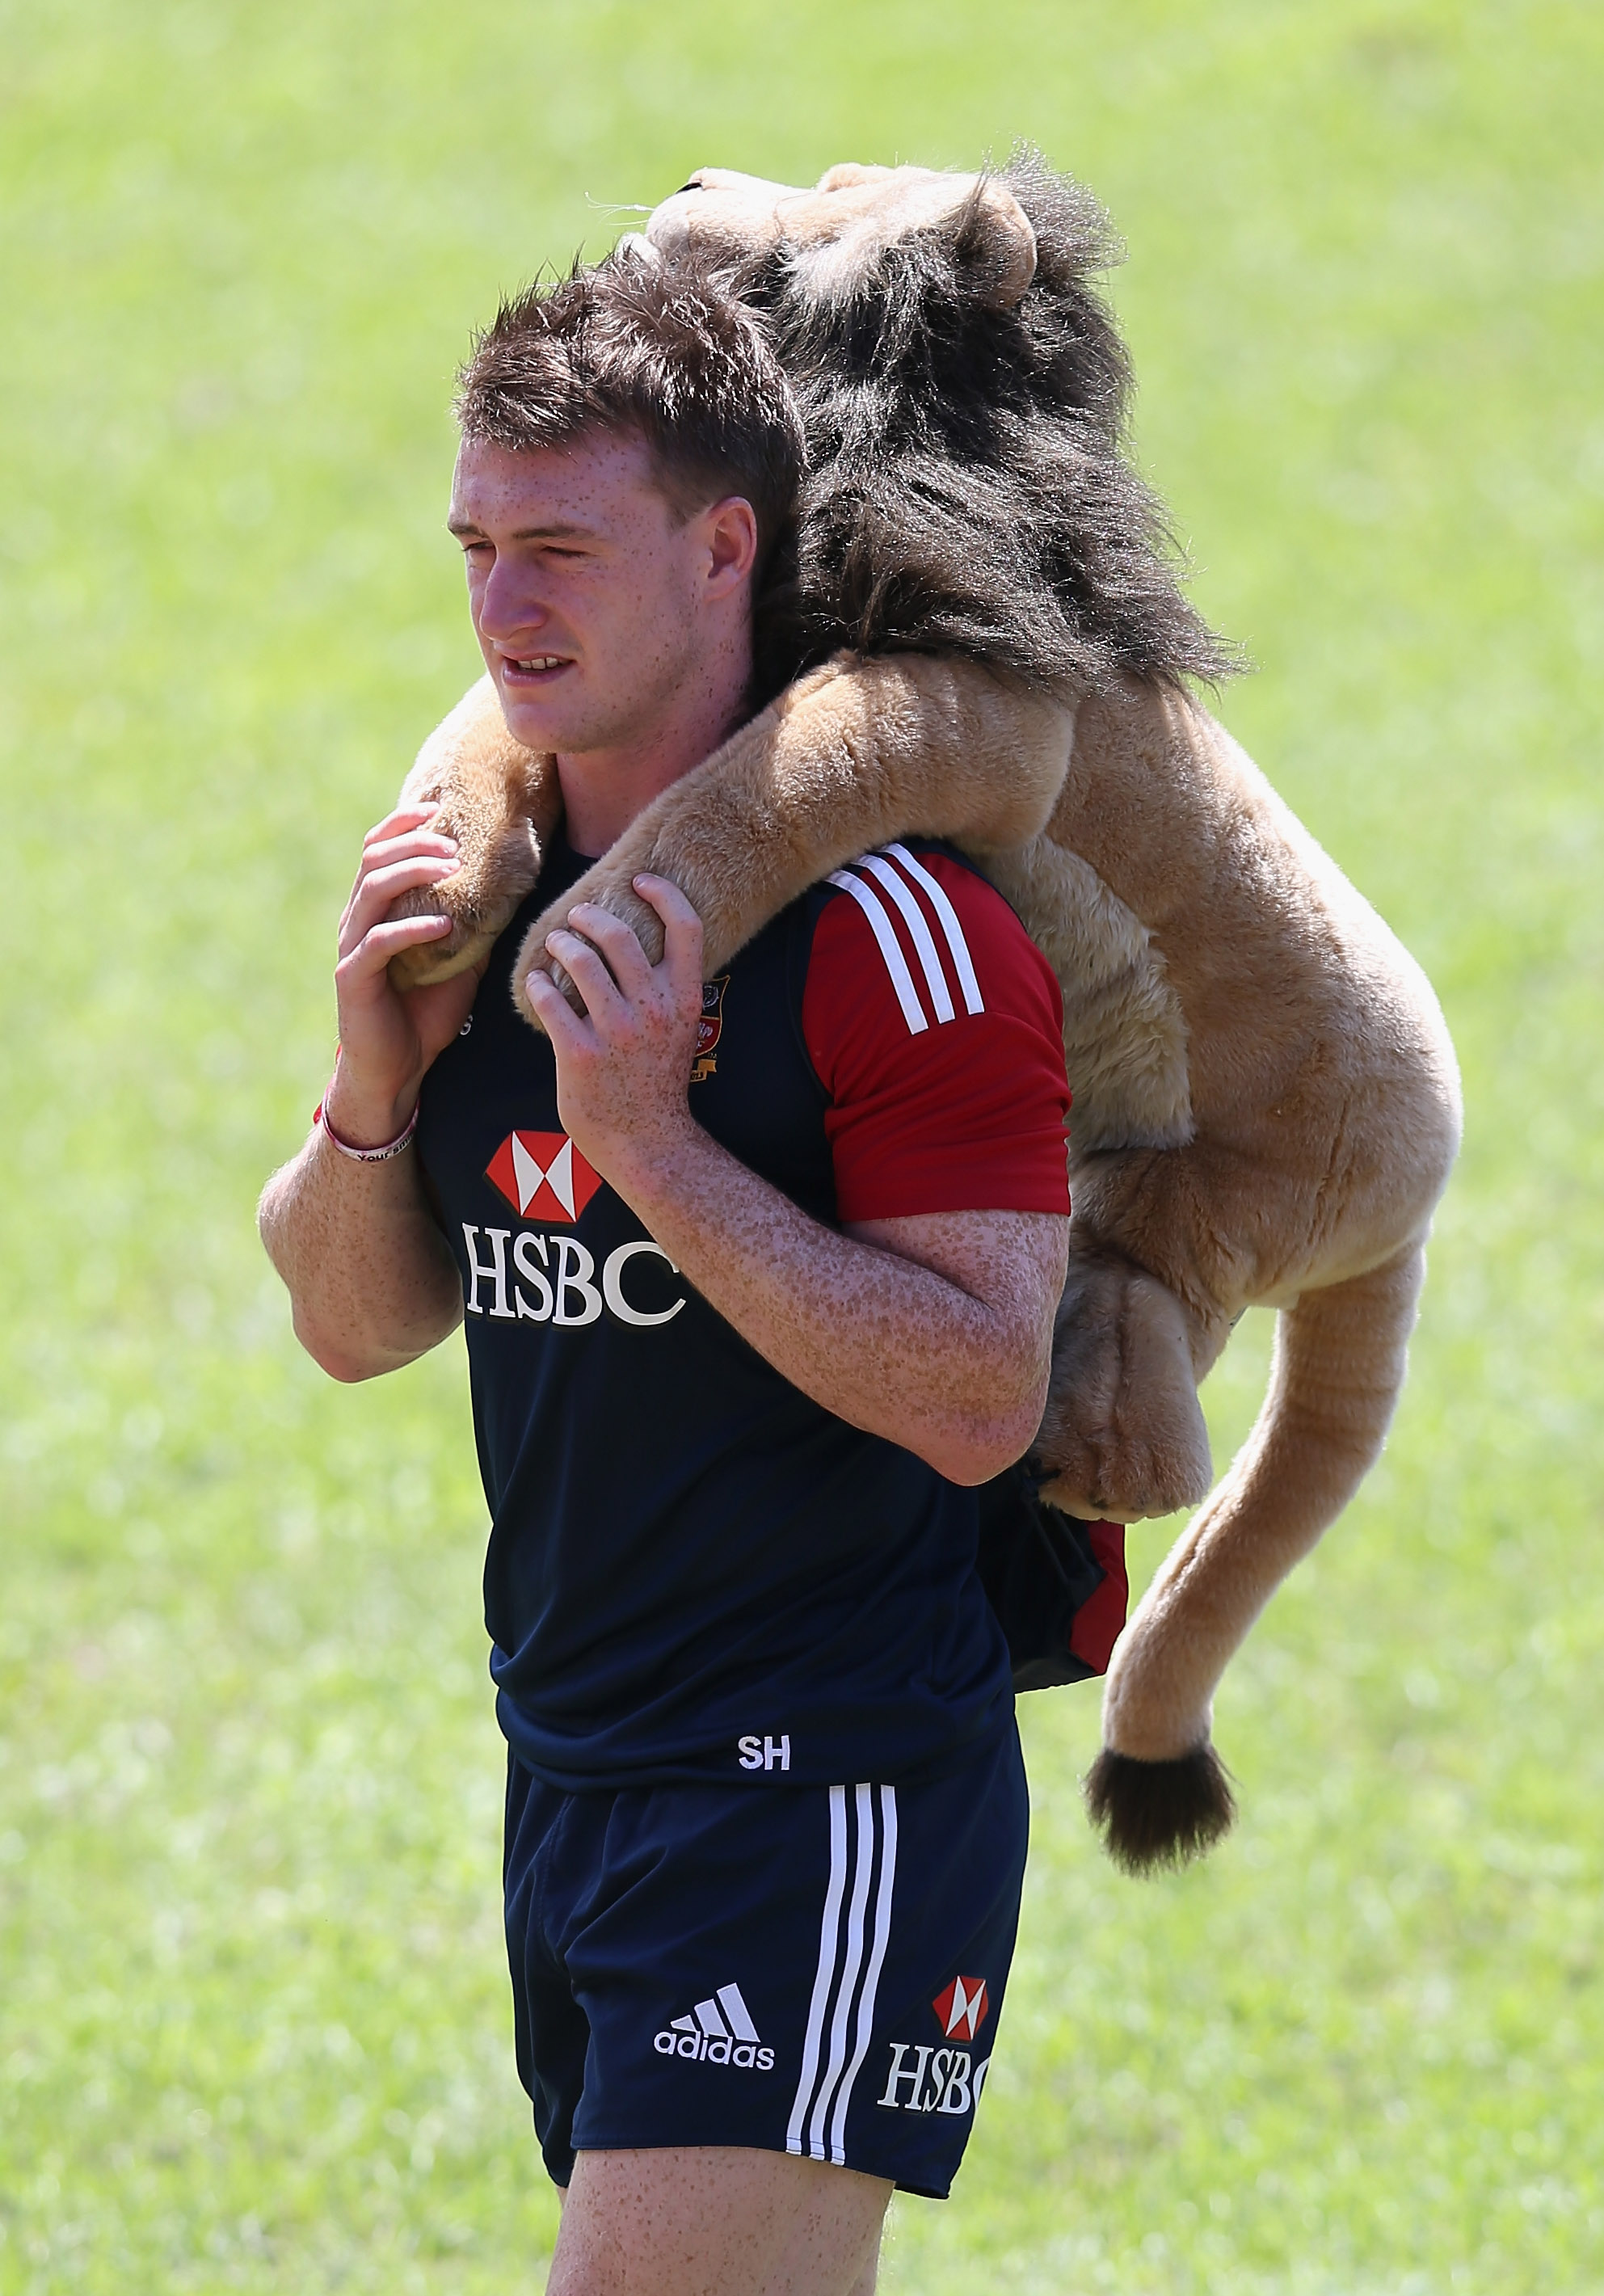 As the youngest player in the squad, Scottish fullback Stuart Hogg was given the duty of looking after the Lions mascot during the 2013 Lions tour to Australia. Photo / Getty Images.